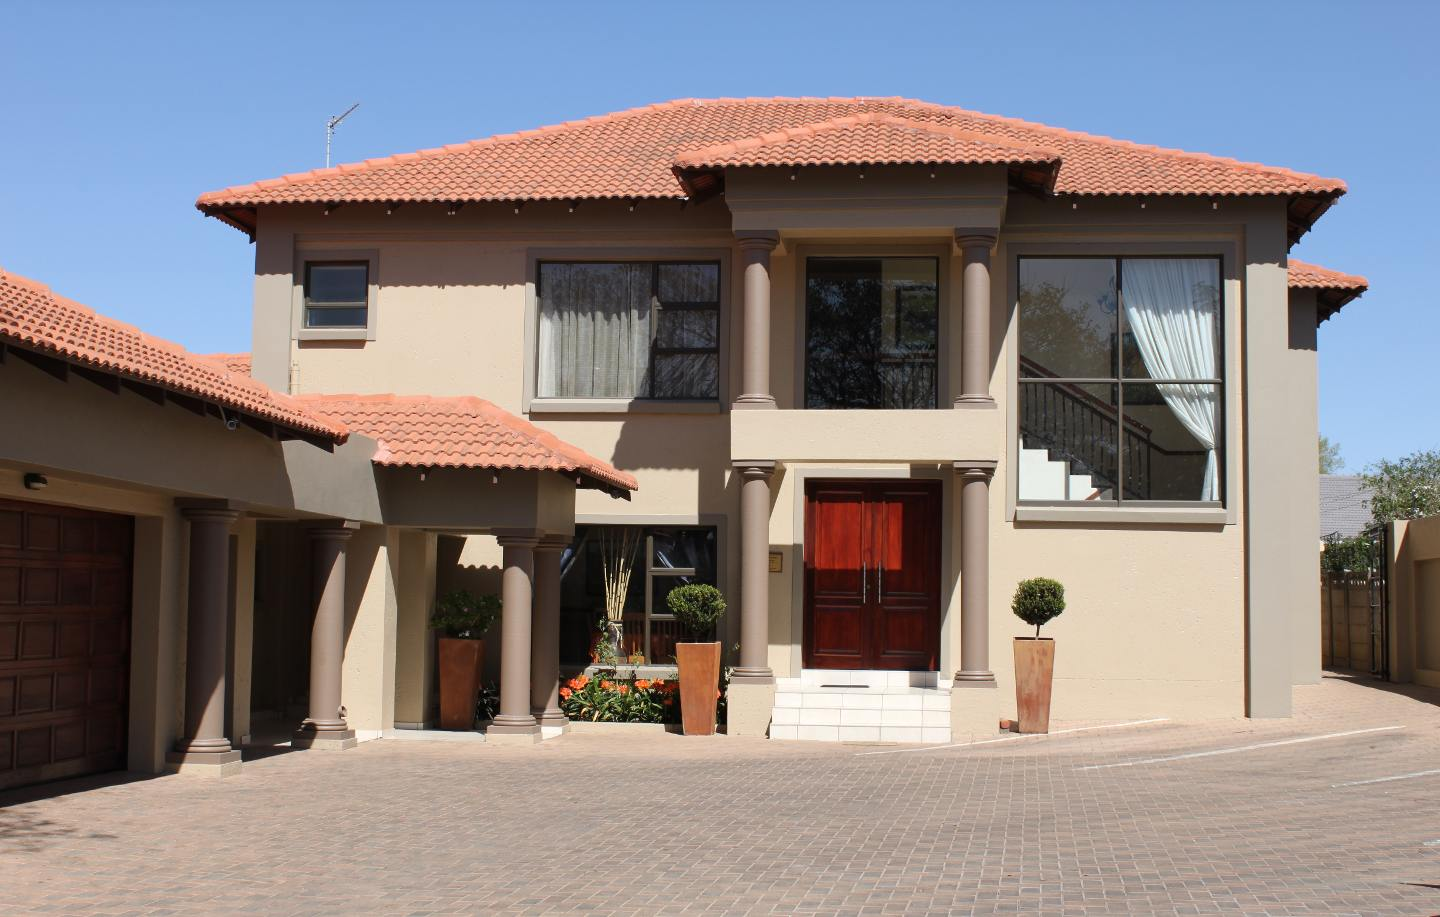 La Palma Guest House, Alberton, South Africa